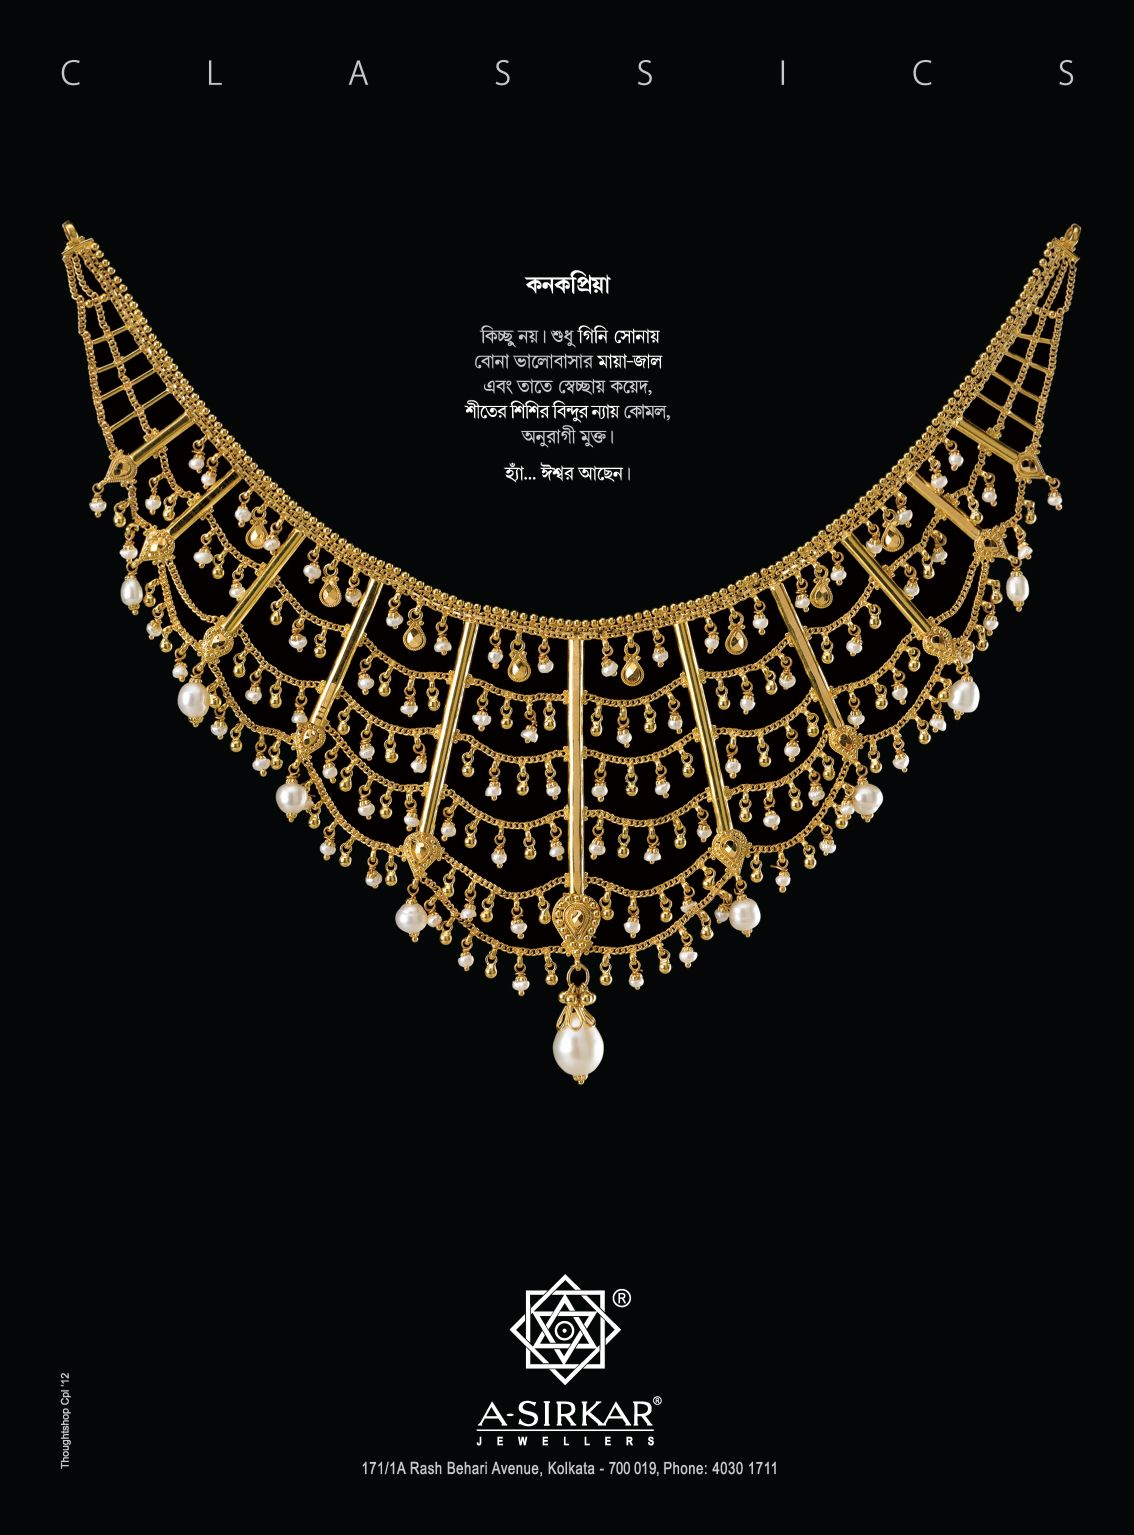 Fashion Jewelry Conscientious Indian Necklace Earrings 22k Gold Plated Eye-catching Latest Sparkling Design Jewelry & Watches